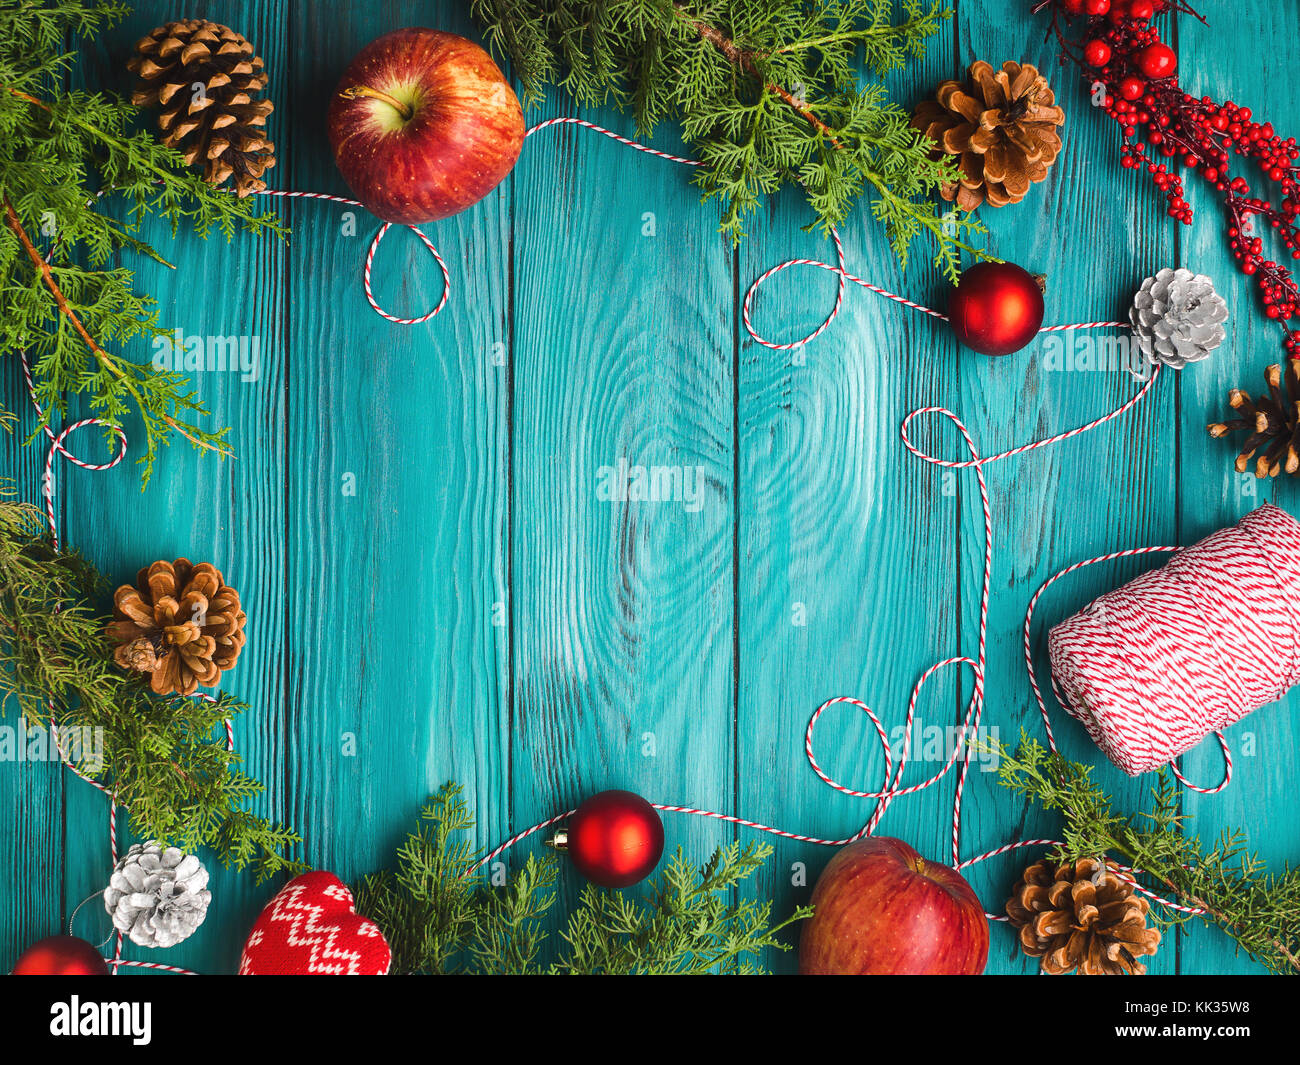 Christmas dark green frame background with pine cones, red baubles and twine, apples. Wooden table texture - Stock Image